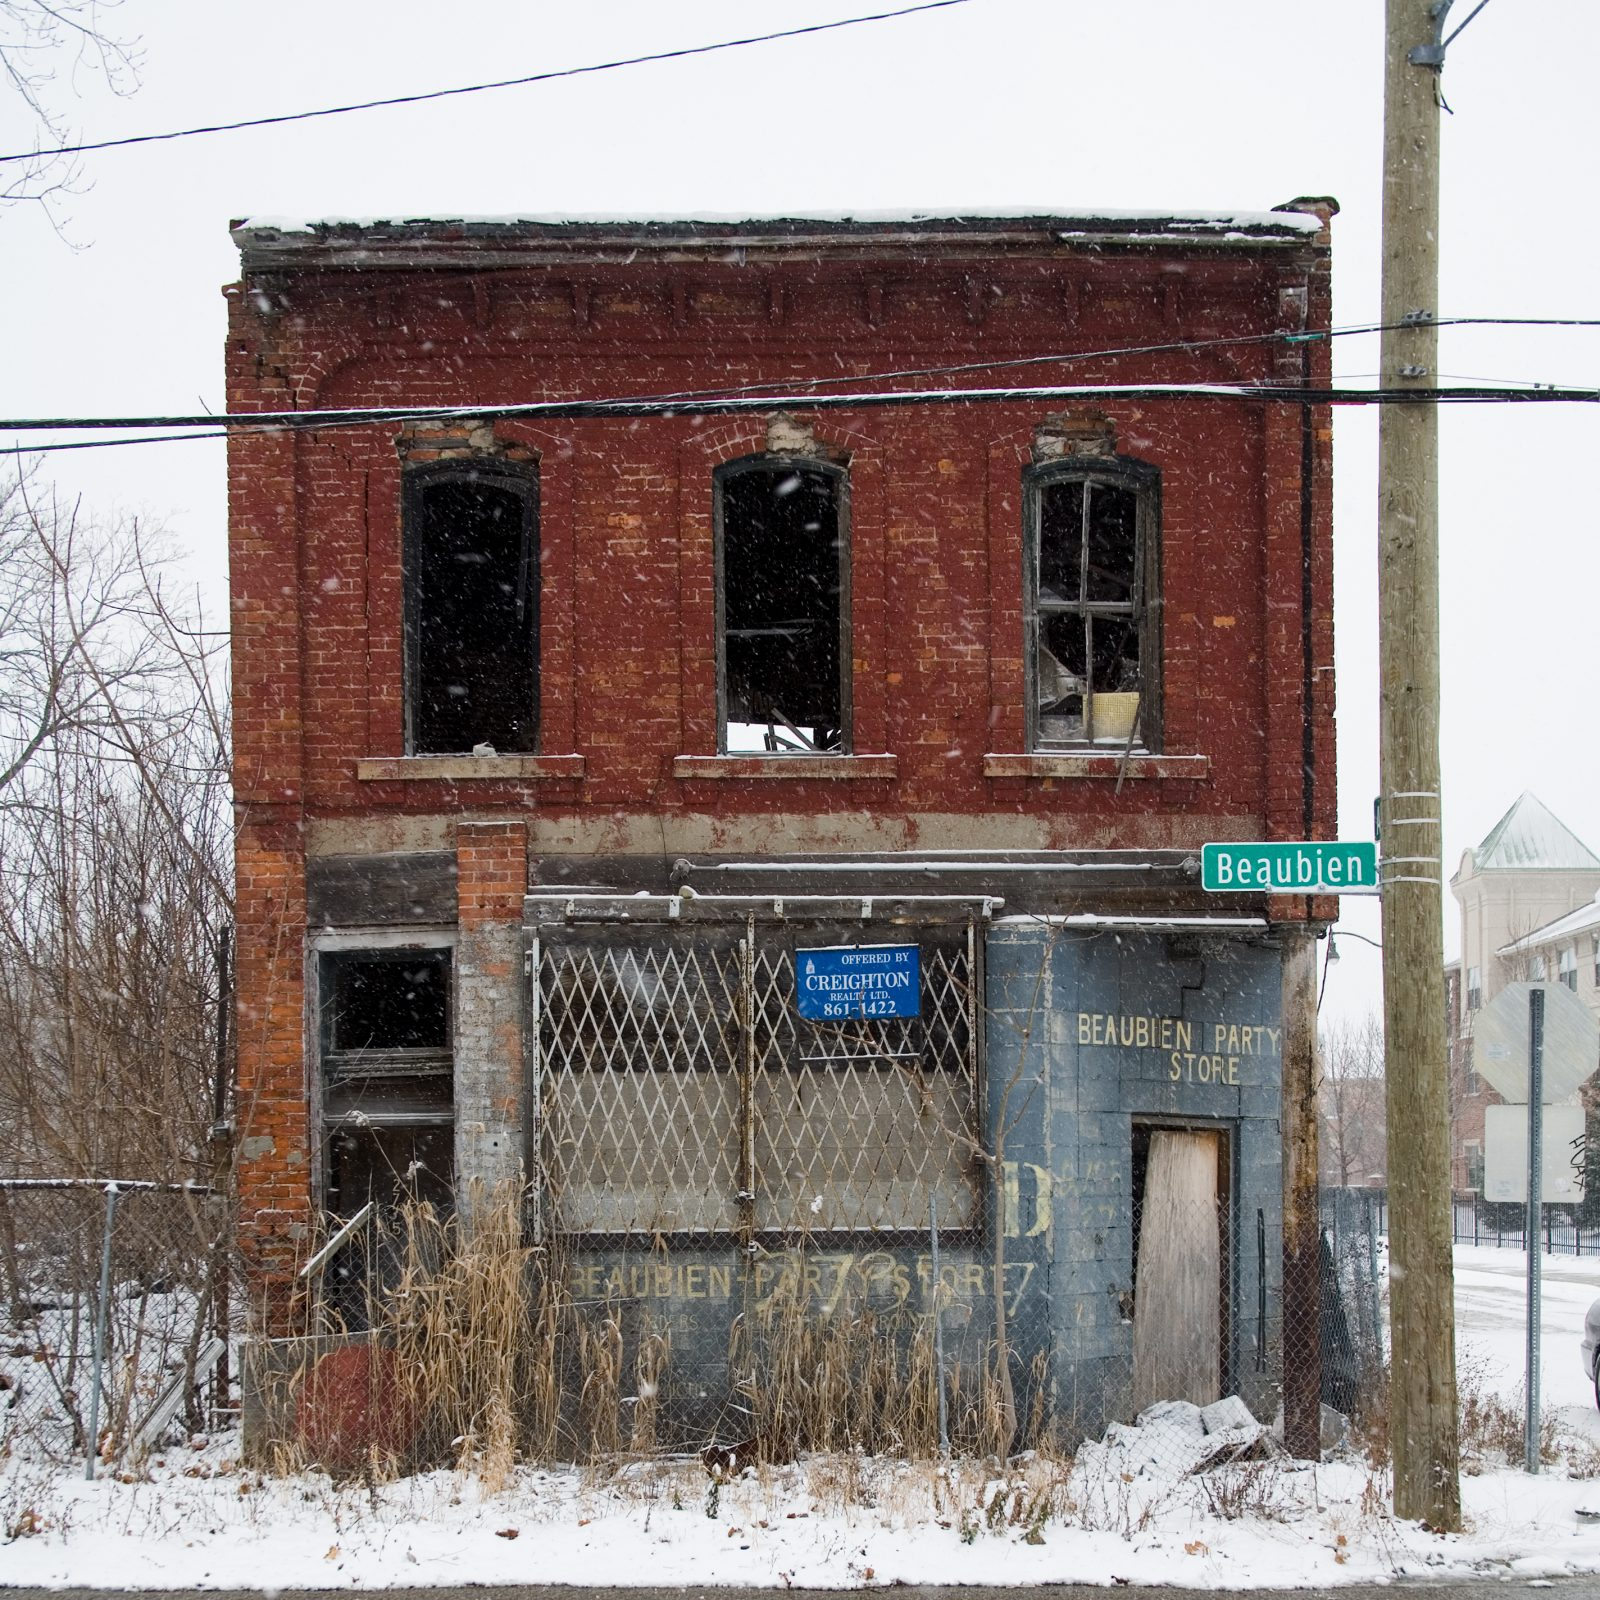 Abandoned Beaubien Party Store in winter. Detroit, Michigan.